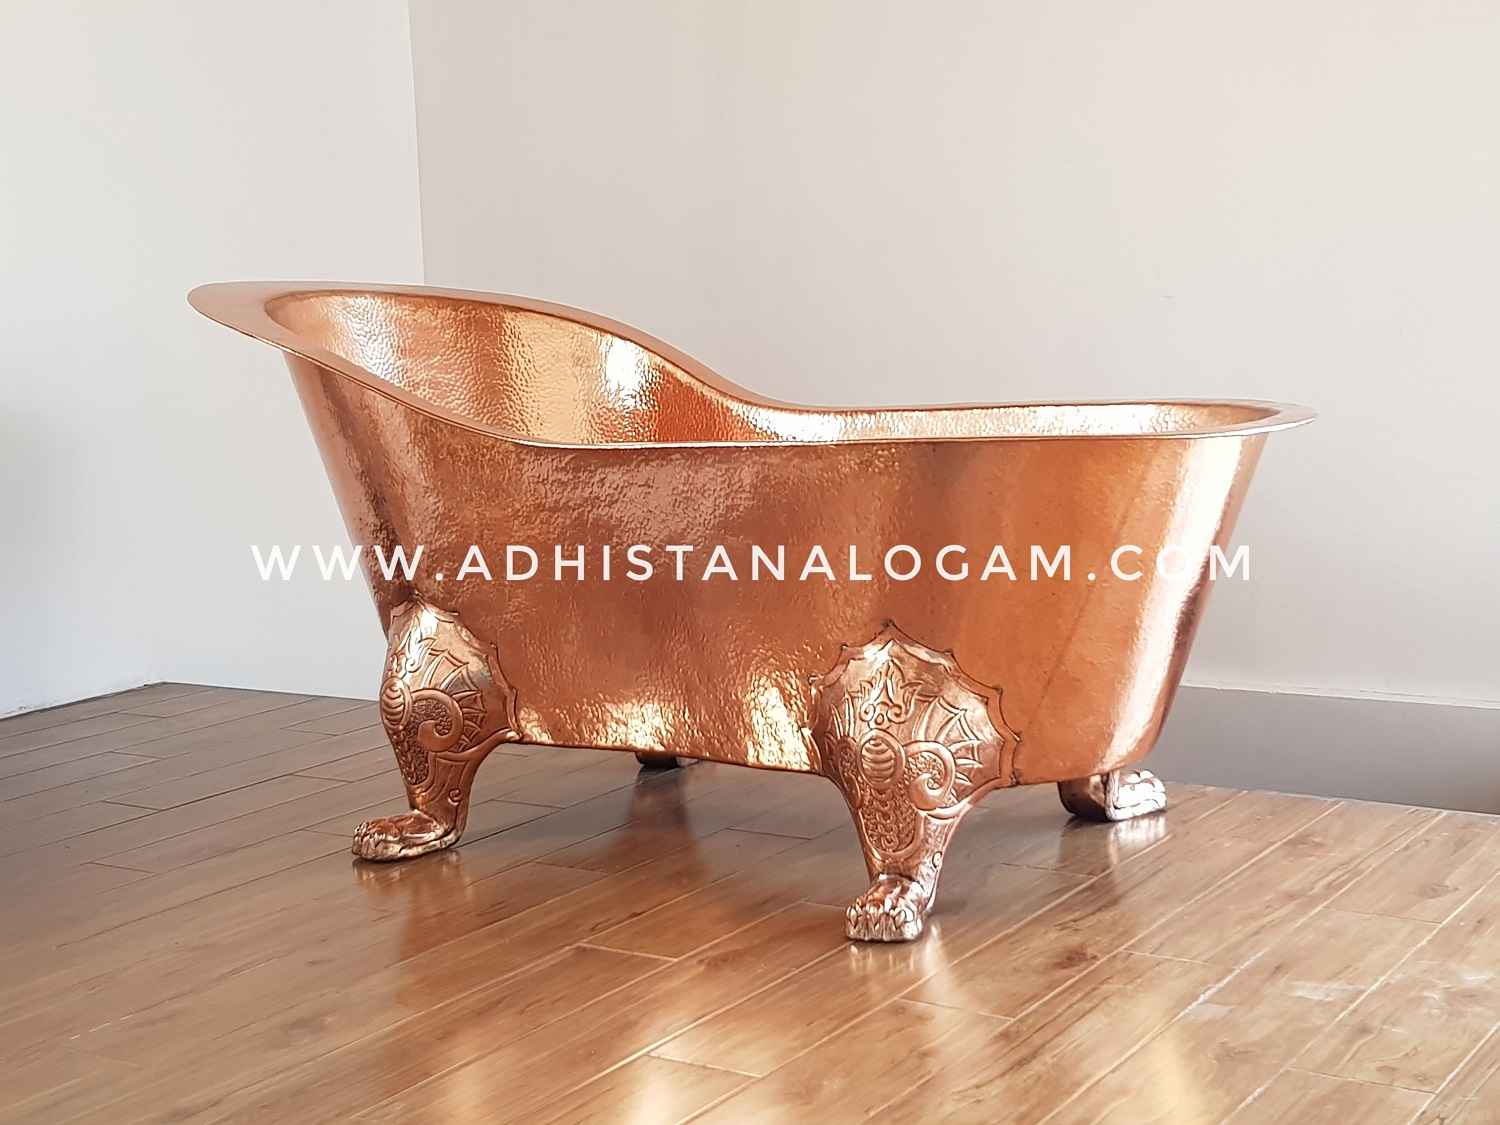 Luxury Copper Bathtub / Bakmandi Tembaga Mewah